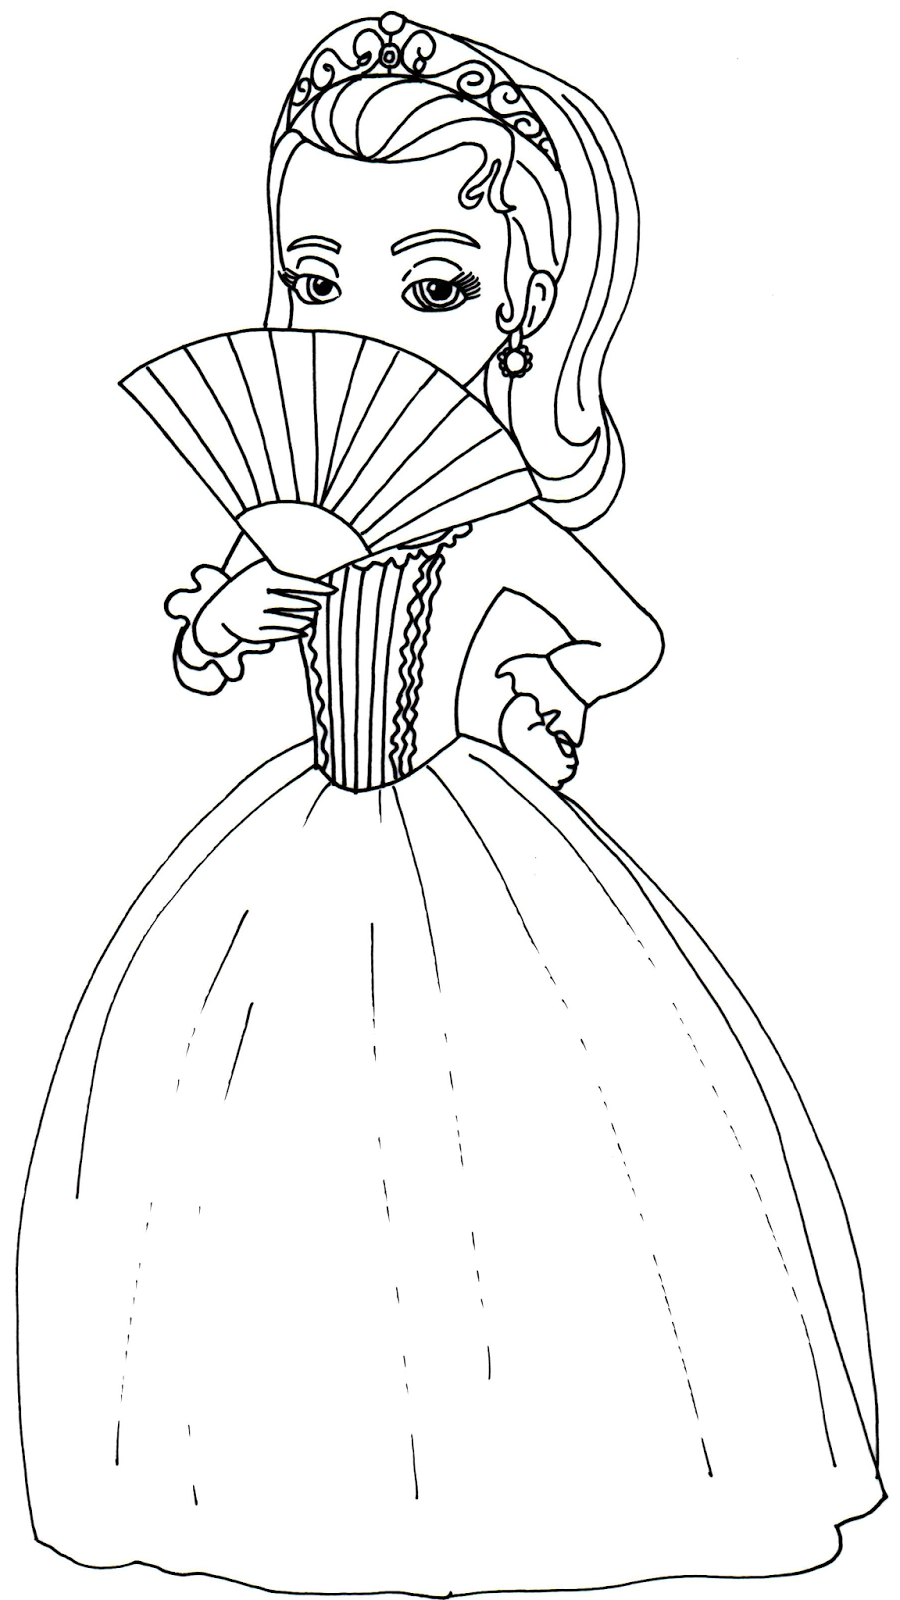 Princess hildegard coloring pages - Sofia The First Coloring Pages Princess Amber Sofia The First